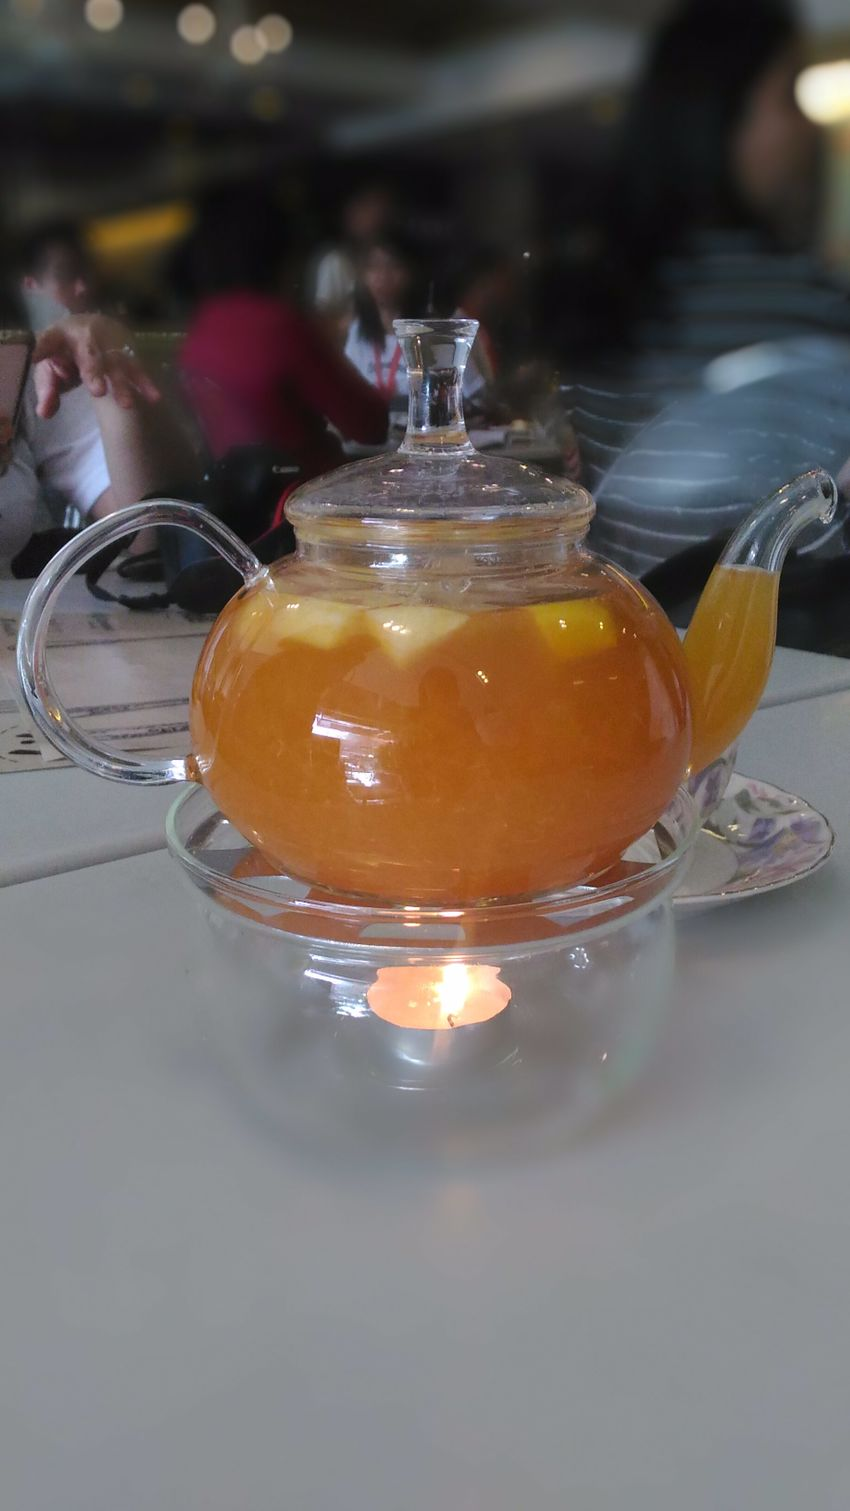 afternoon fruit tea Afternoon Tea Beverage Fruit Tea Healthy Drink Healthy Lifestyle Indulgence Still Life Tea Tea Time Teapot Transparent Transparent Container Unwind Warm Drink